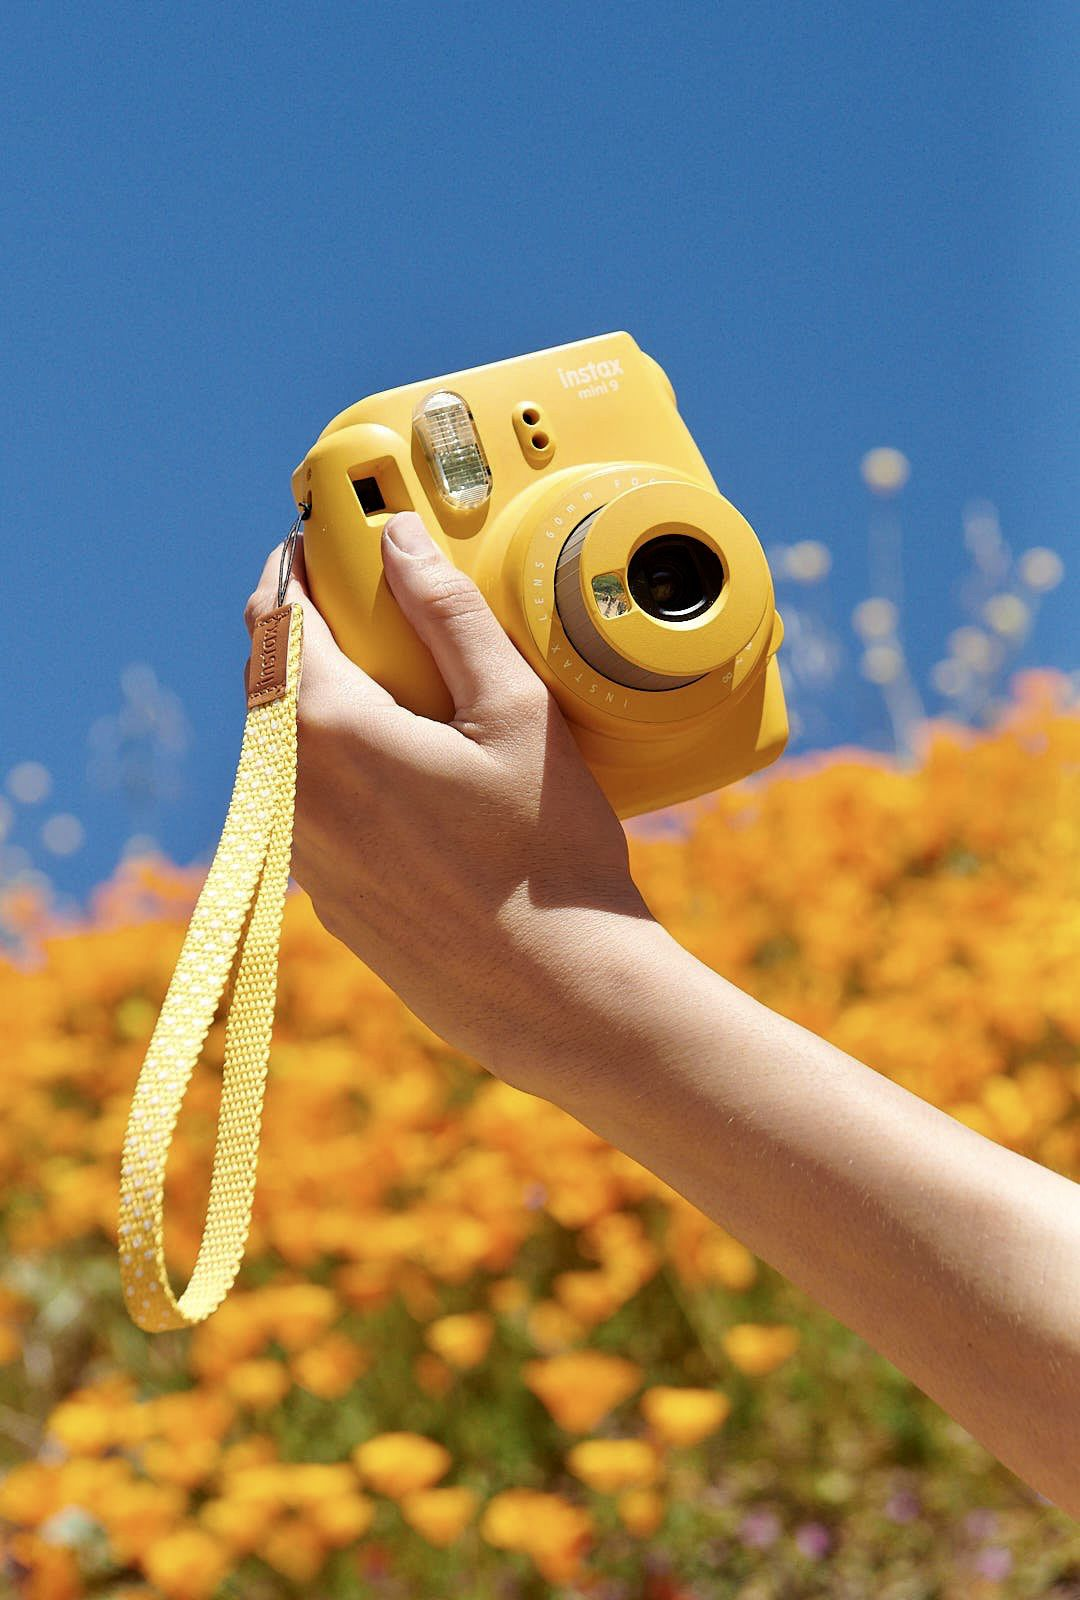 Pin by jemima ison on photography Instant camera, Yellow